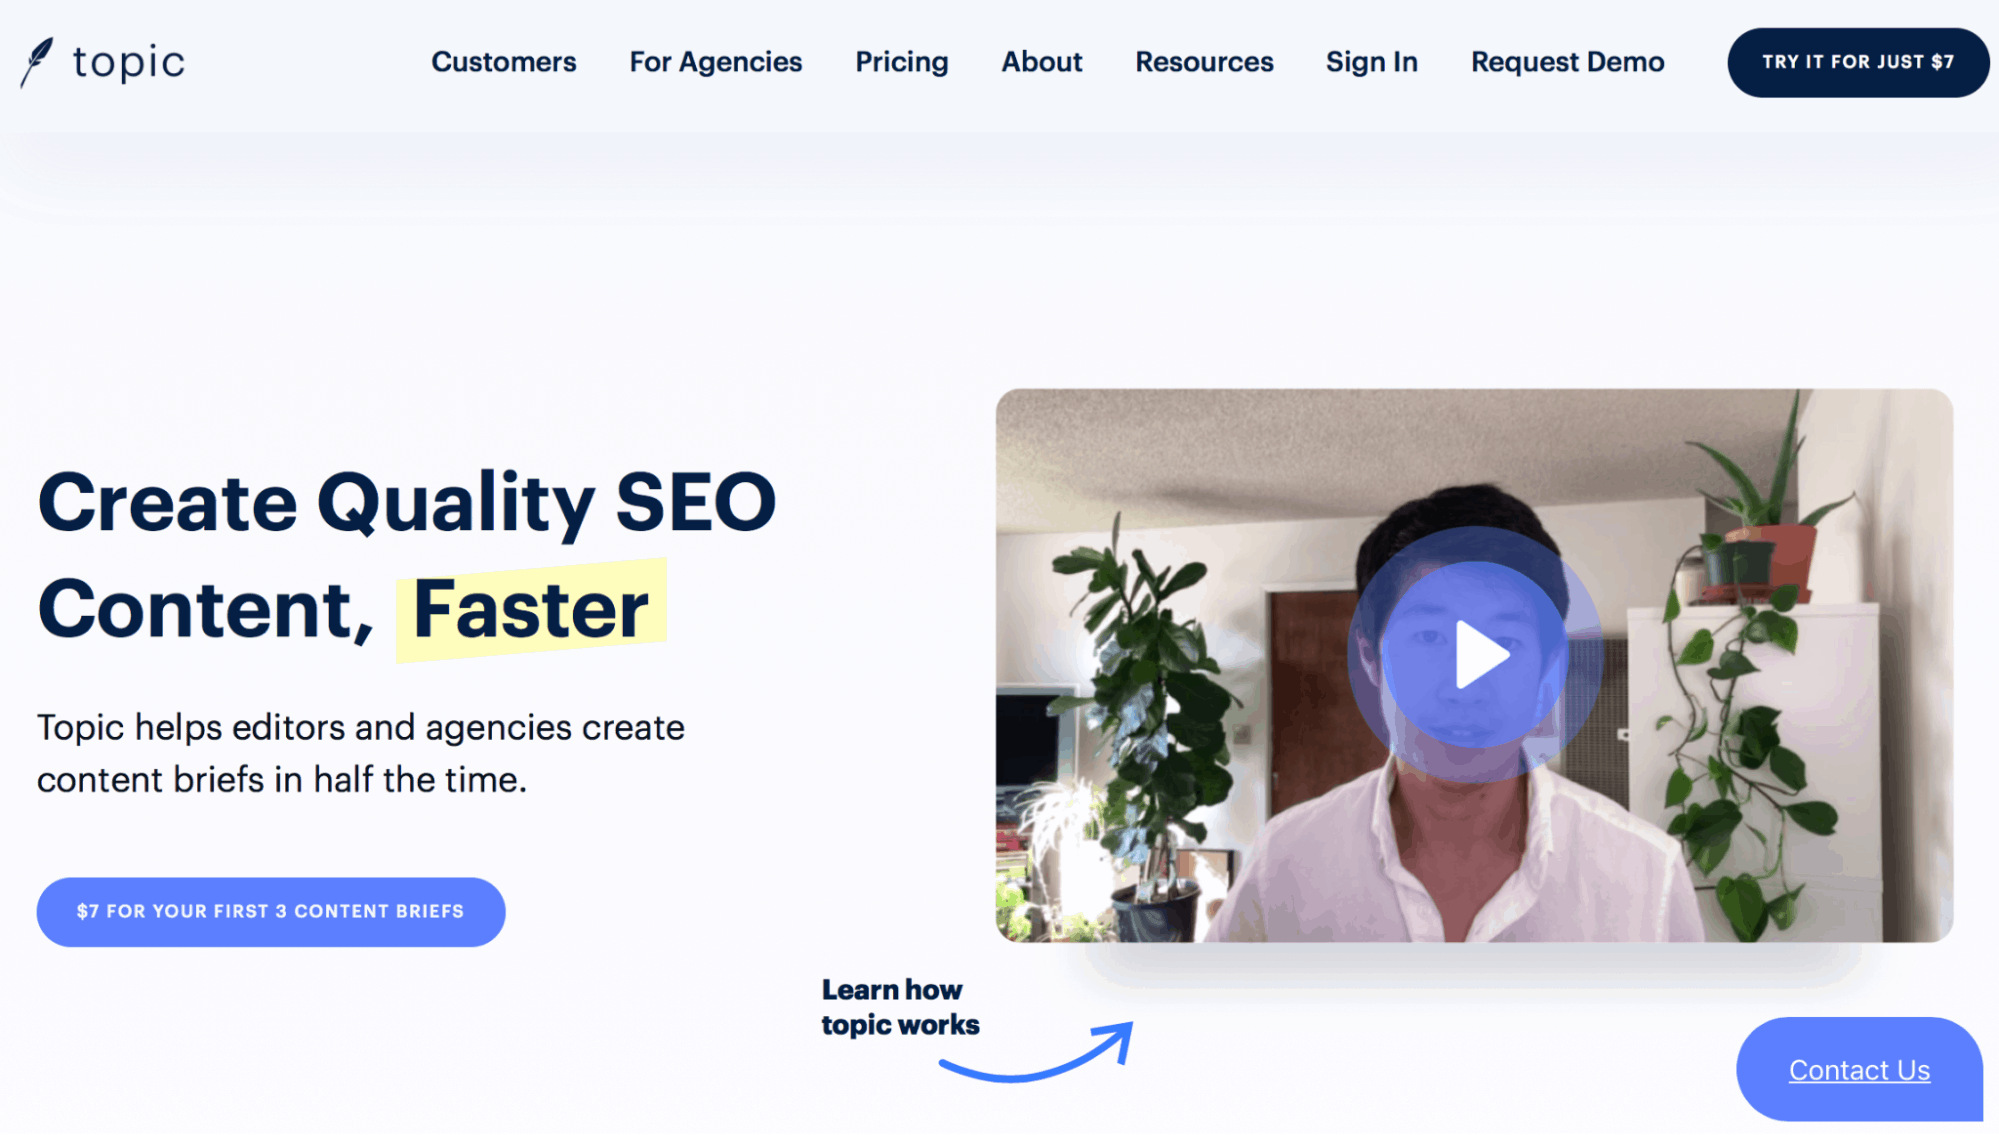 Topic Landing Page - Content Optimization